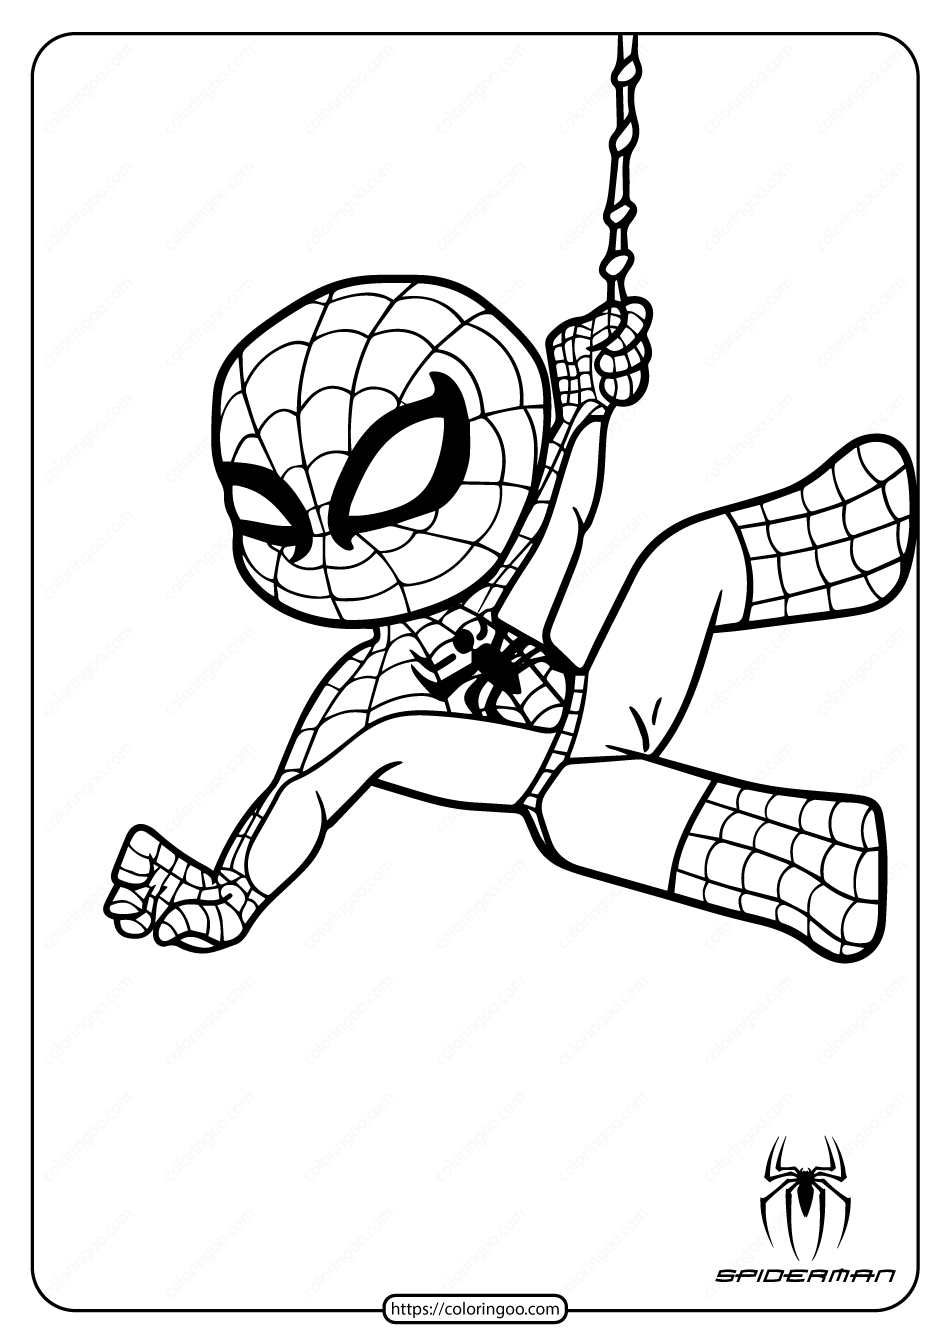 12 Best Spiderman Coloring Sheet In 2021 Spiderman Coloring Cartoon Coloring Pages Unicorn Coloring Pages